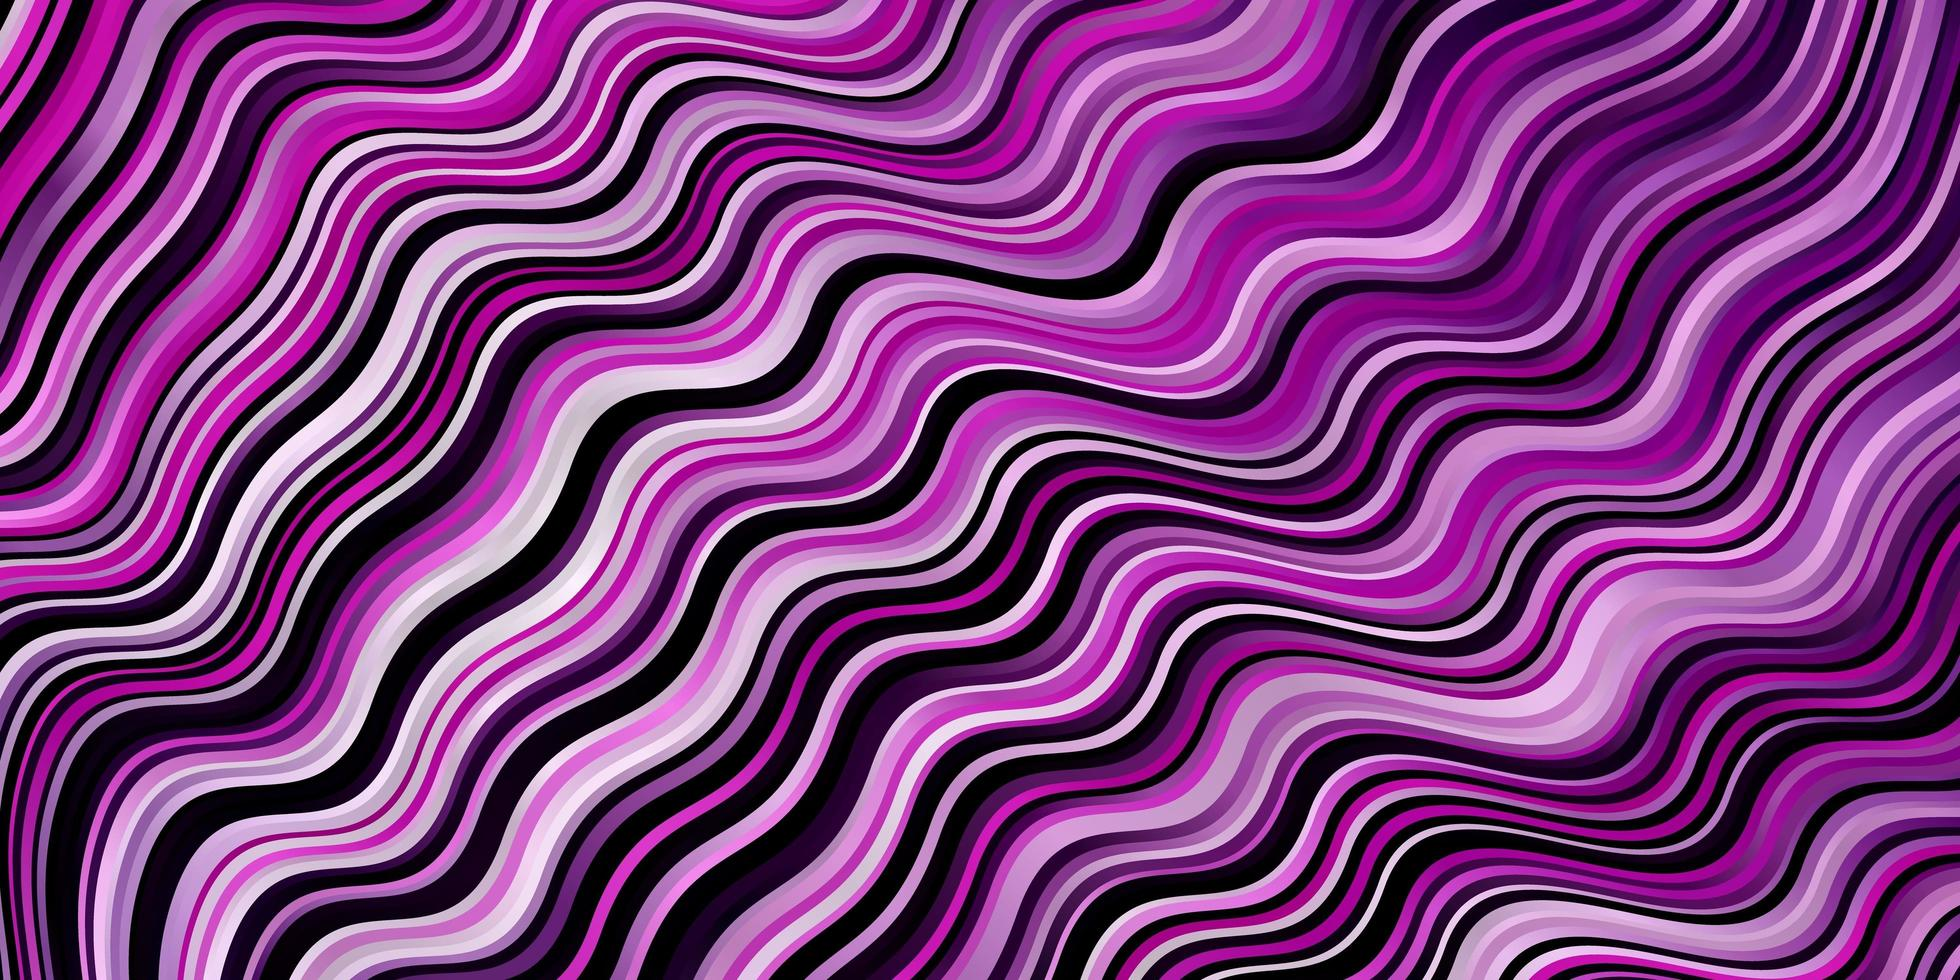 Light Purple vector template with lines.